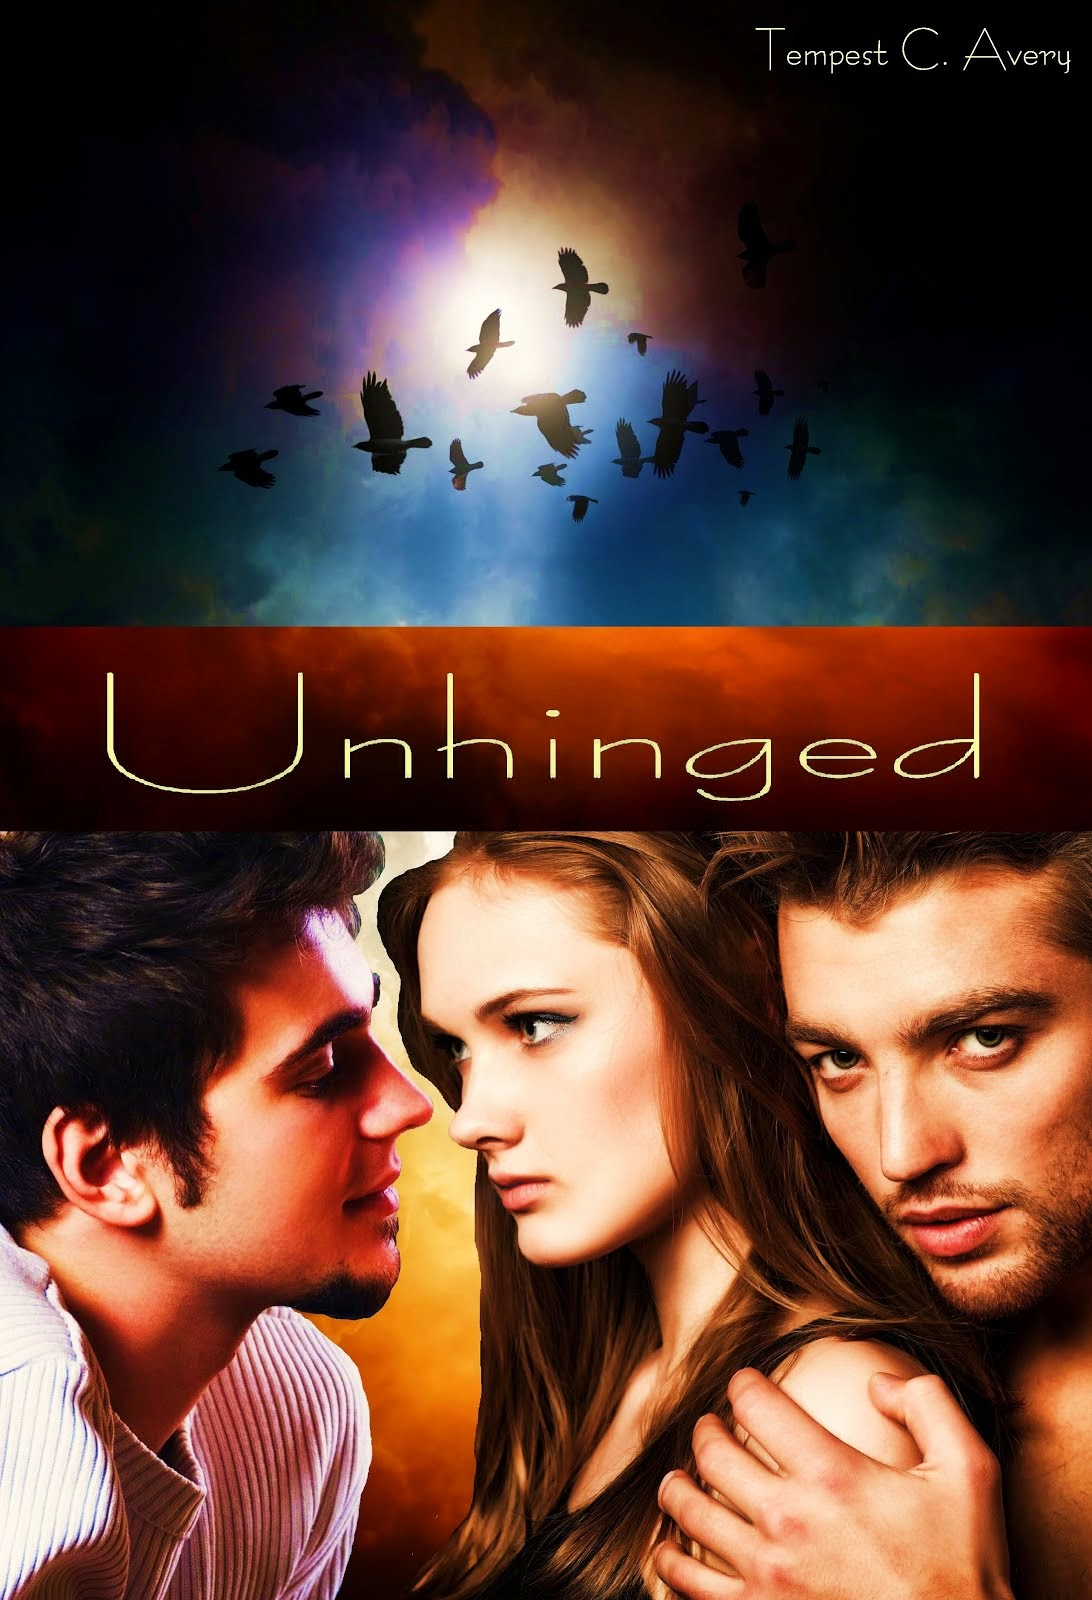 Unhinged by Tempest C. Avery